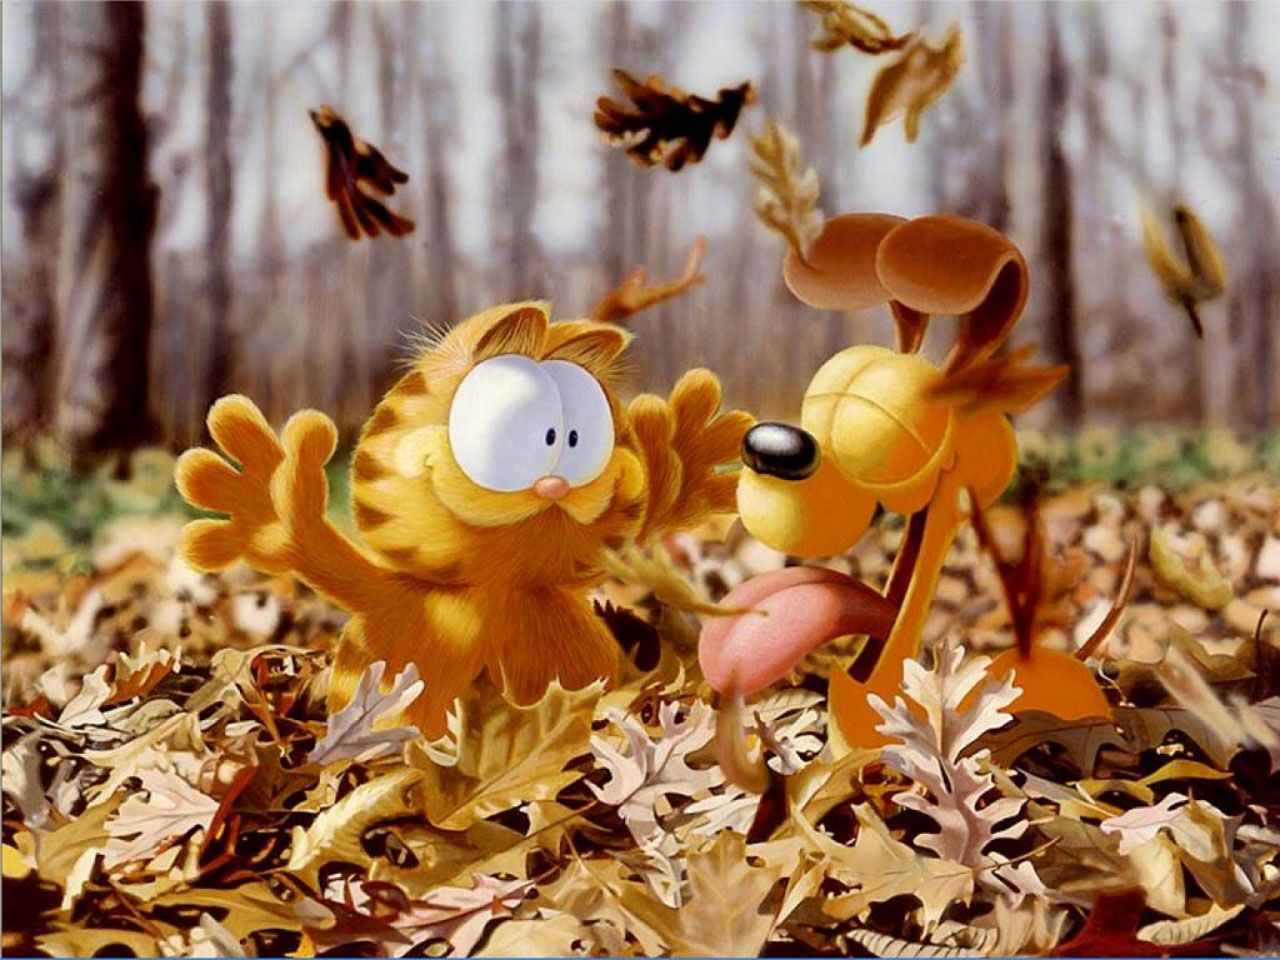 Garfield And Odie Playing With Leaves Wallpaper 1280x960